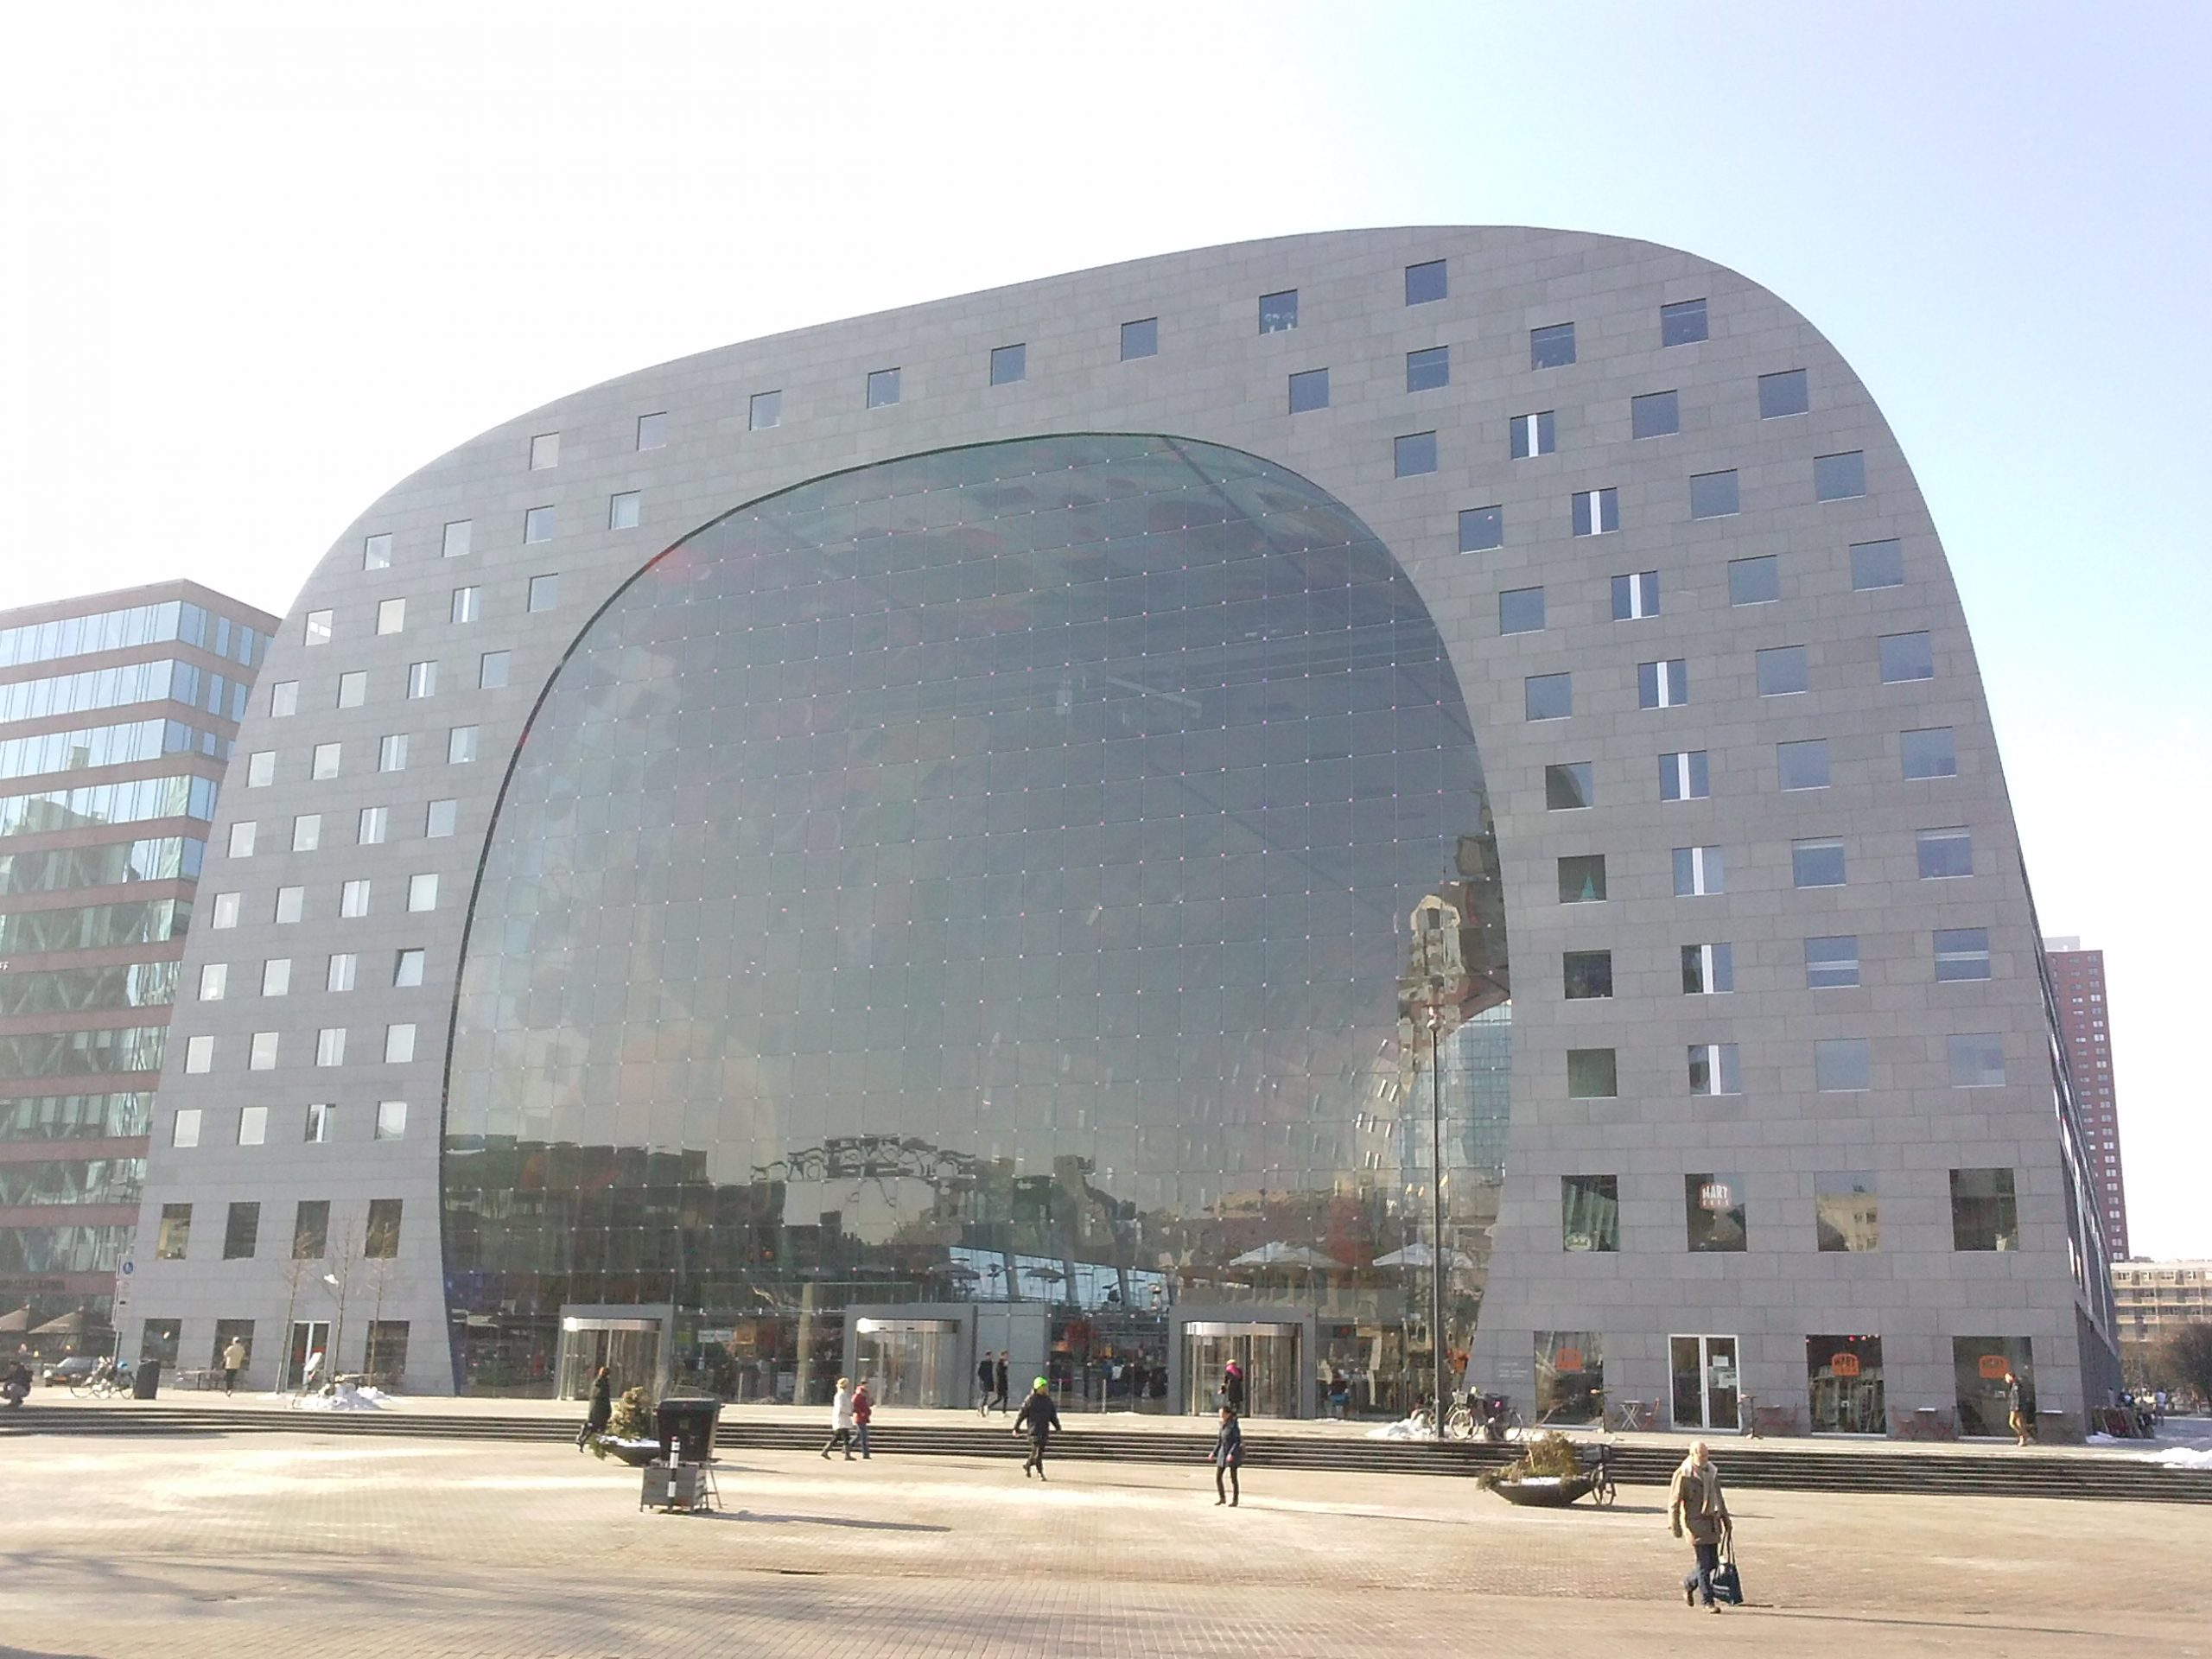 The Markthal as seen from the Binnenrotte, Rotterdam center